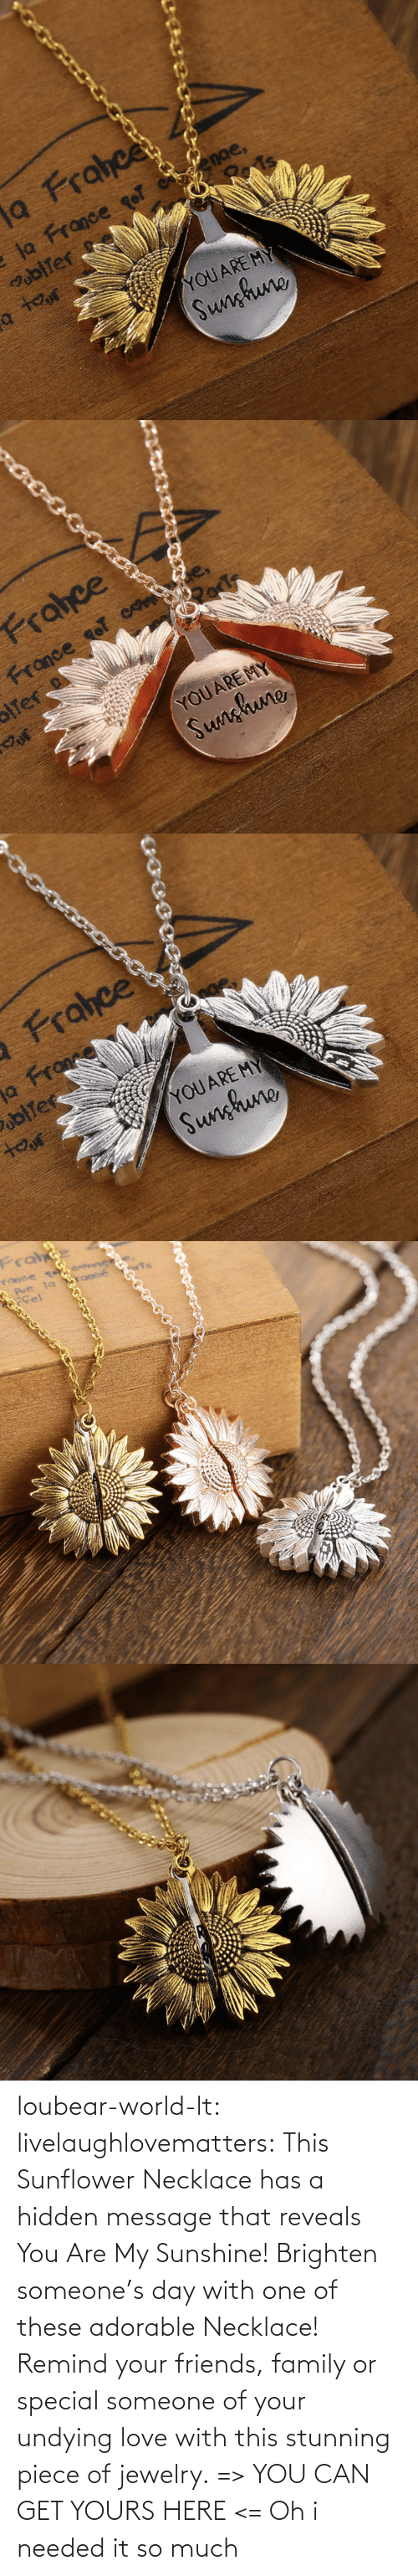 remind: loubear-world-lt: livelaughlovematters:   This Sunflower Necklace has a hidden message that reveals You Are My Sunshine! Brighten someone's day with one of these adorable Necklace! Remind your friends, family or special someone of your undying love with this stunning piece of jewelry. => YOU CAN GET YOURS HERE <=    Oh i needed it so much